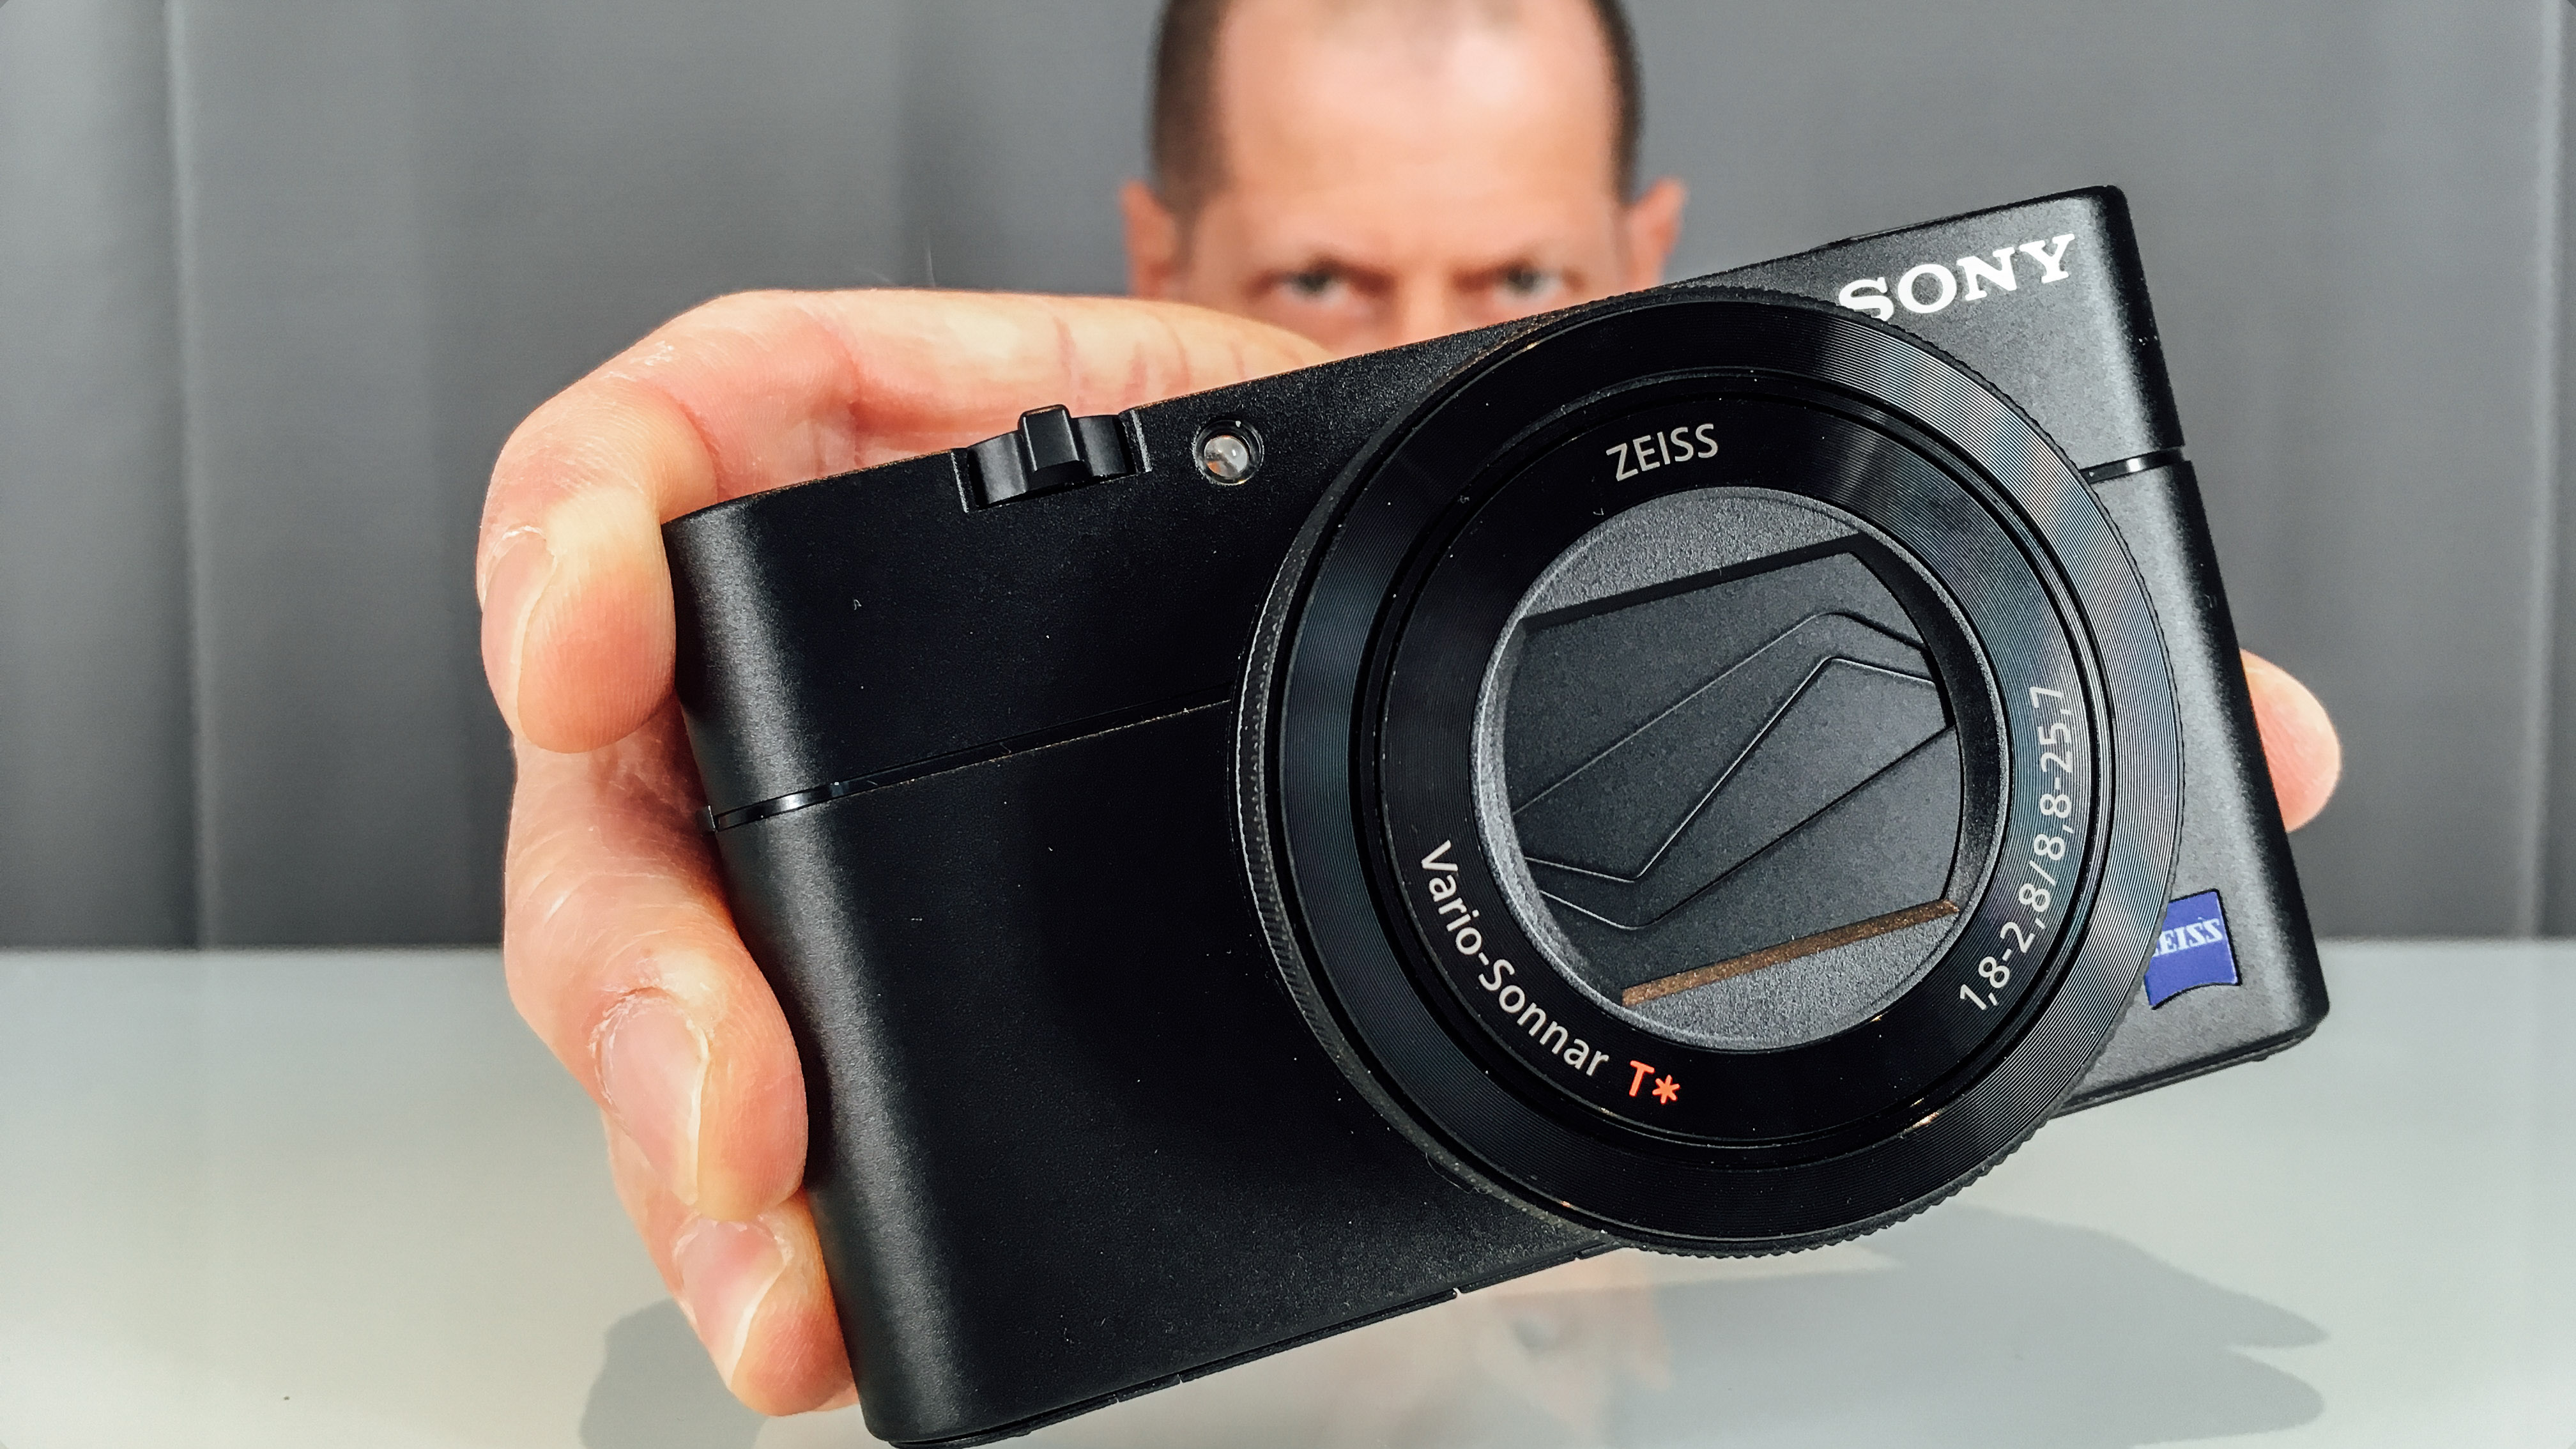 Sony RX100 V Review - Exploring Slo-Mo and 24fps Continuous Shooting